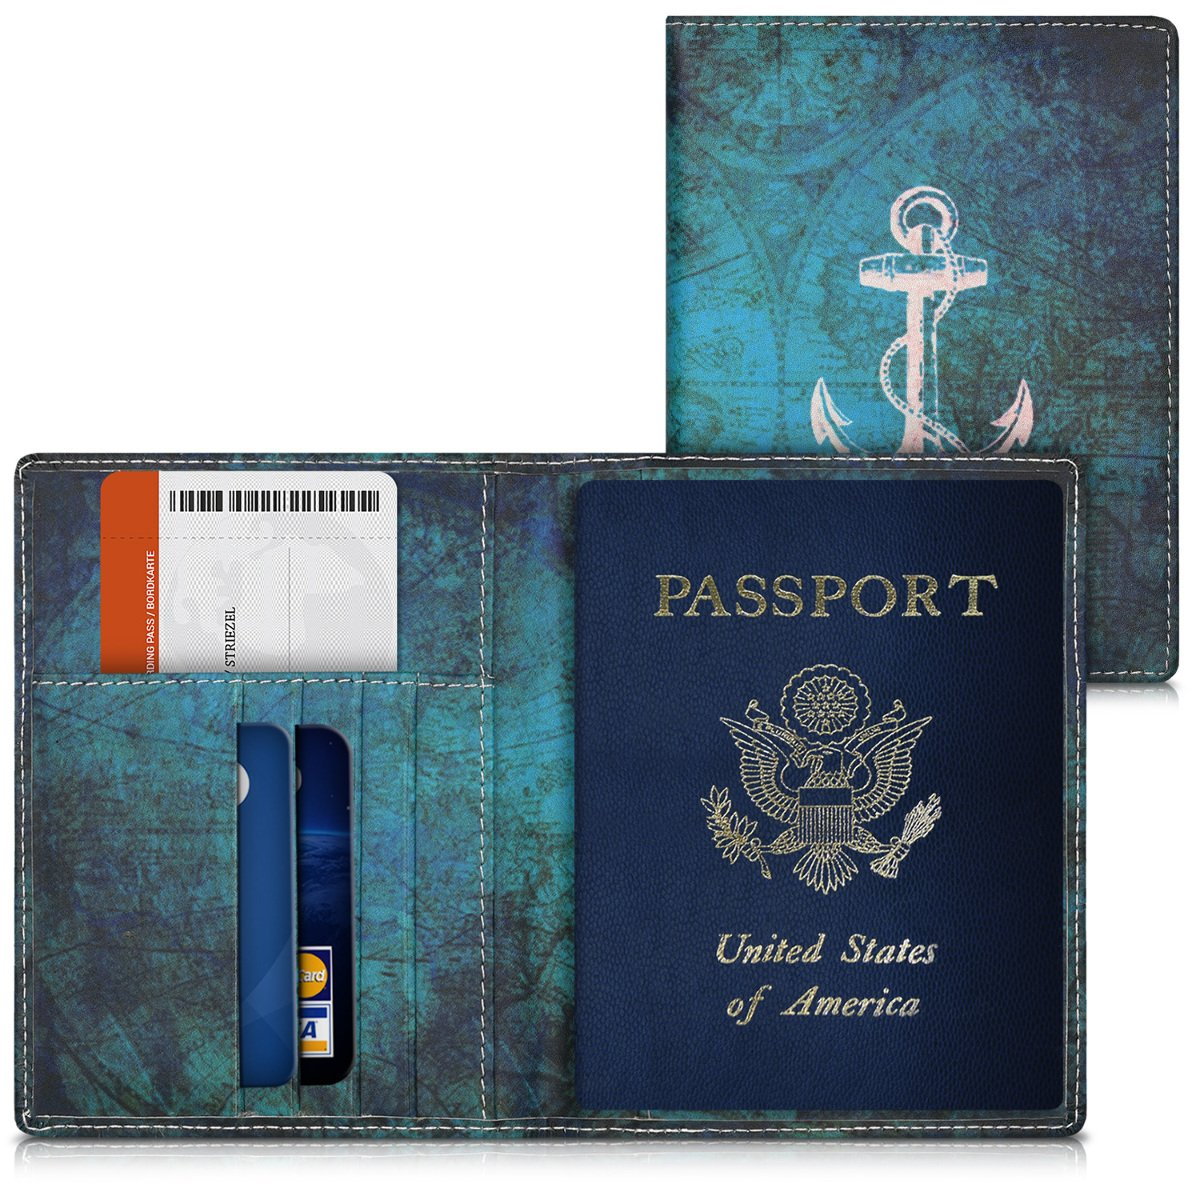 kwmobile Passport Holder with Card Slots - PU Leather Passport Cover Protective Case - Travel Wallet for Men & Women